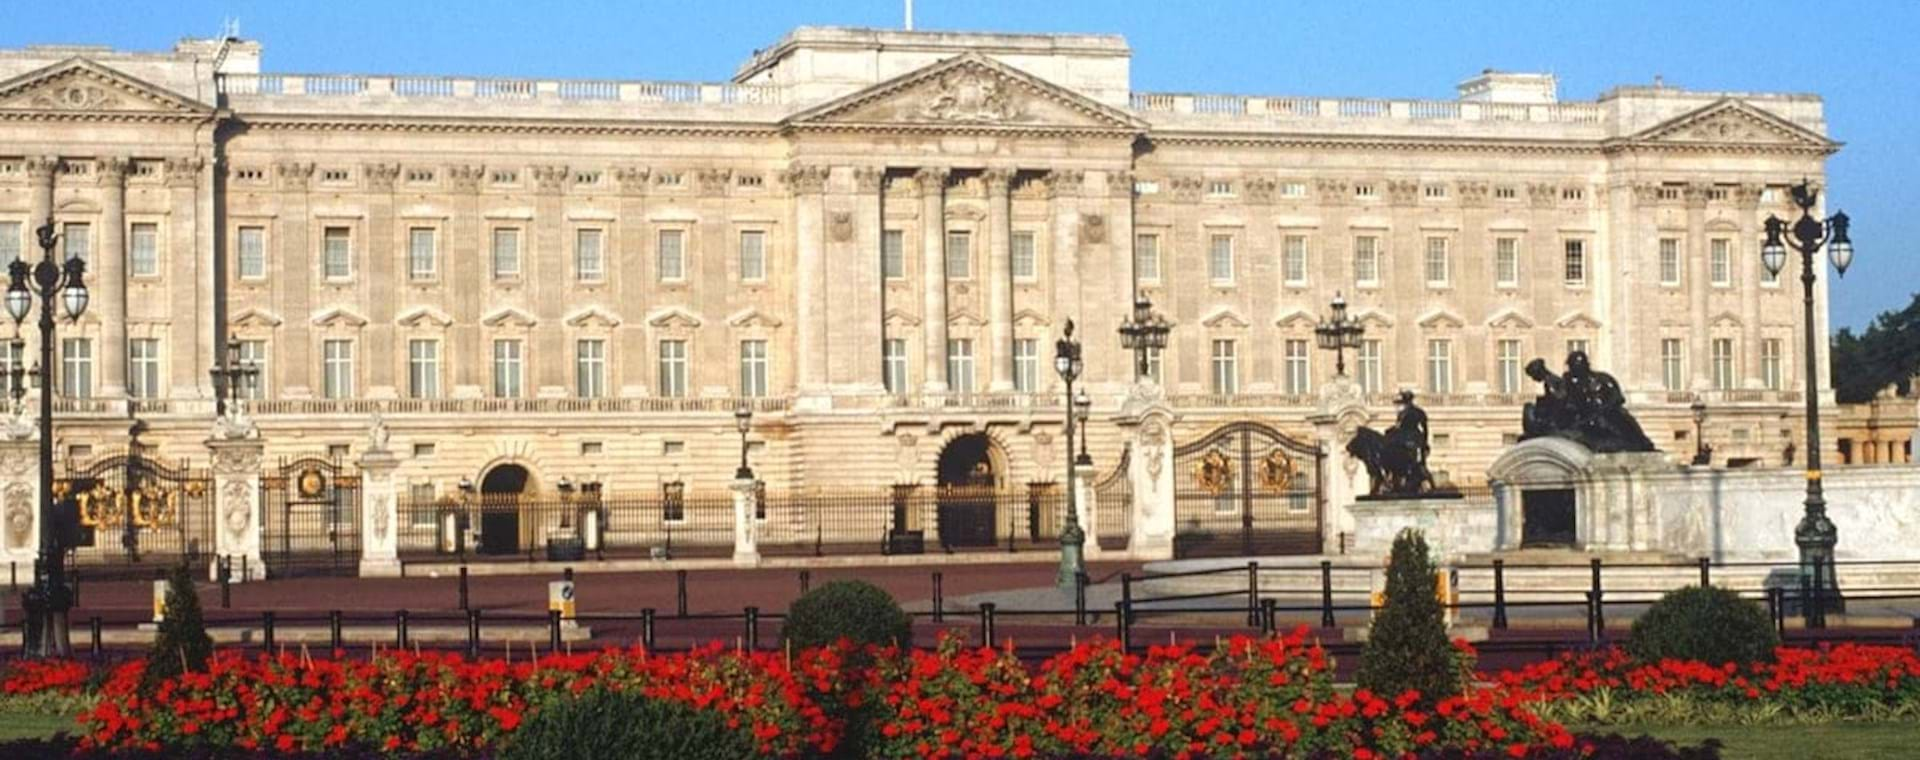 Buckingham Palace with Red Flowers